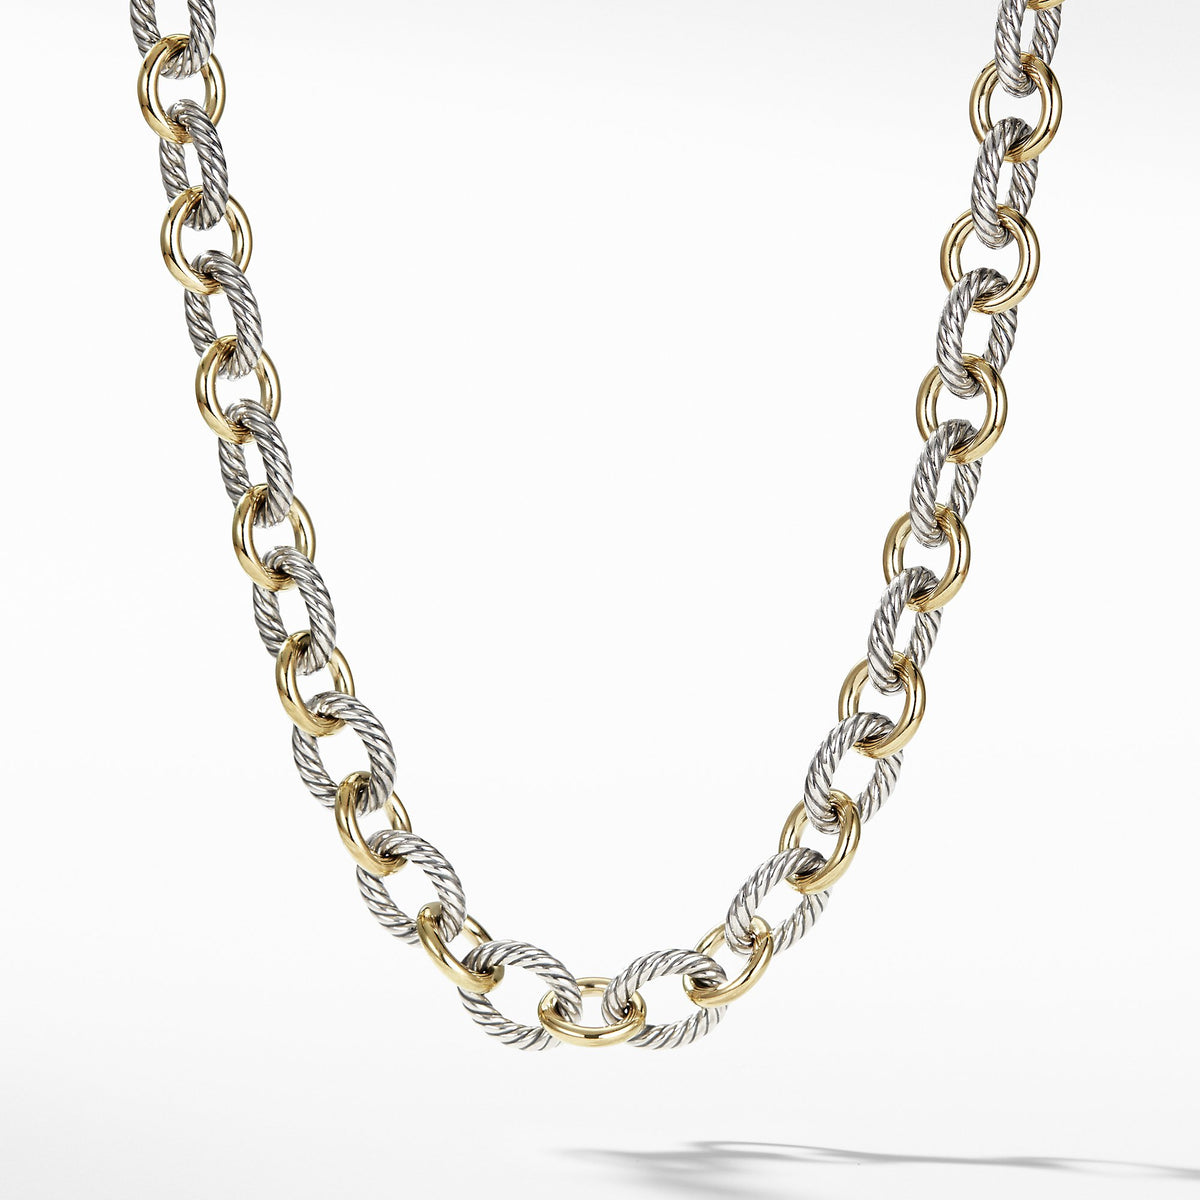 Chain Necklace with 18K Gold